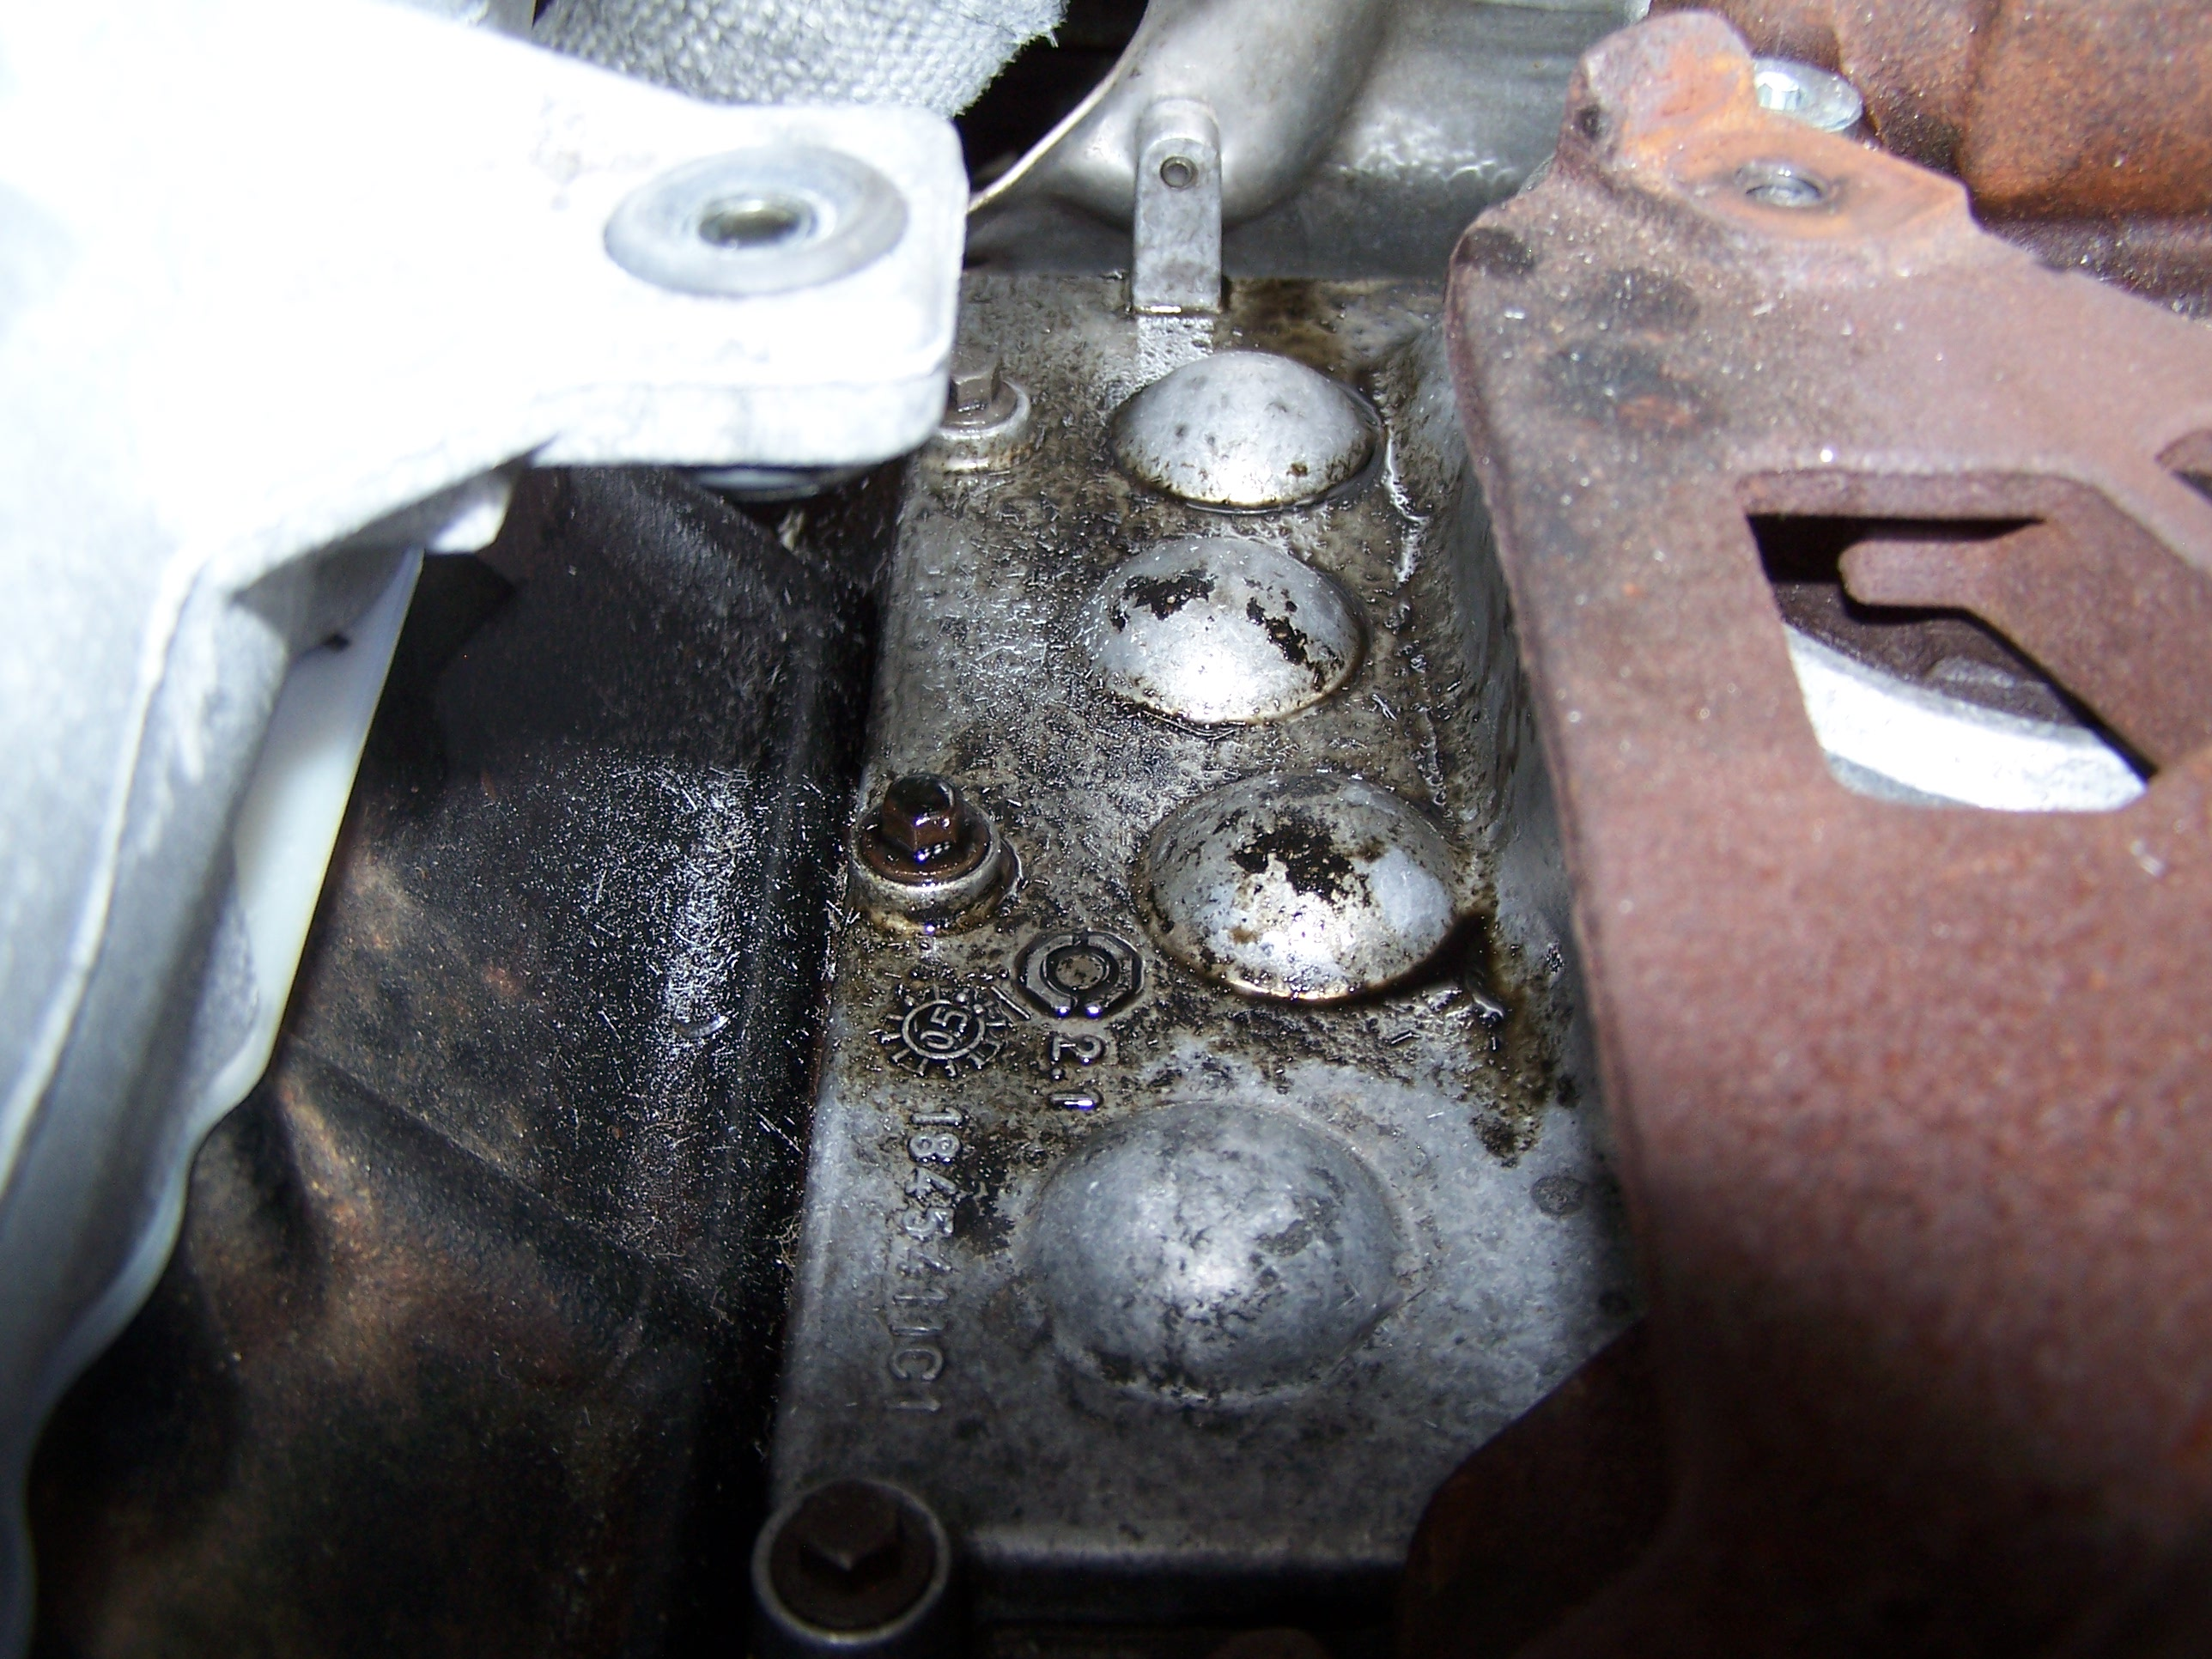 HELP! Burning oil out of tailpipe-100_1760.jpg